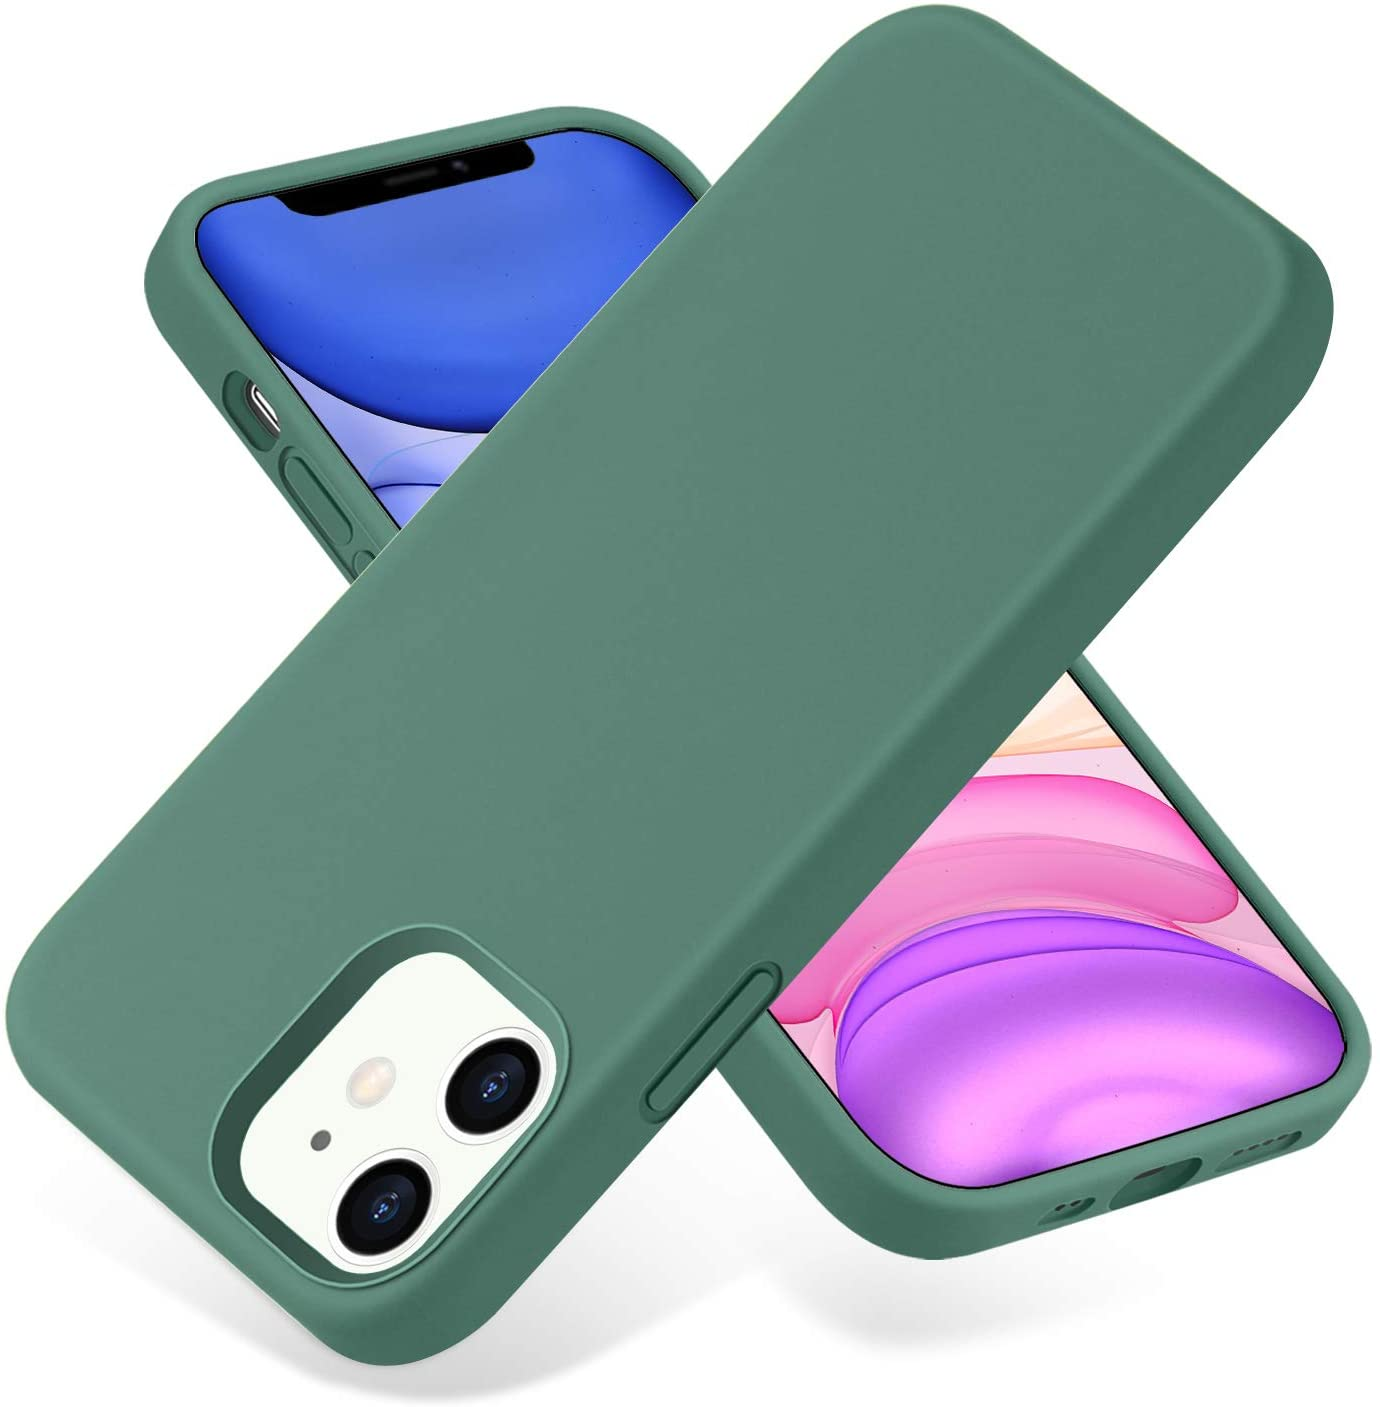 SNBLK Designed for iPhone 12 / iPhone 12 Pro Case Liquid Silicone 6.1 Inch (2020), Soft Thick Protective Rubber Cell Phone Basic Cases Covers for Women Men Girls Boys, Pine Green